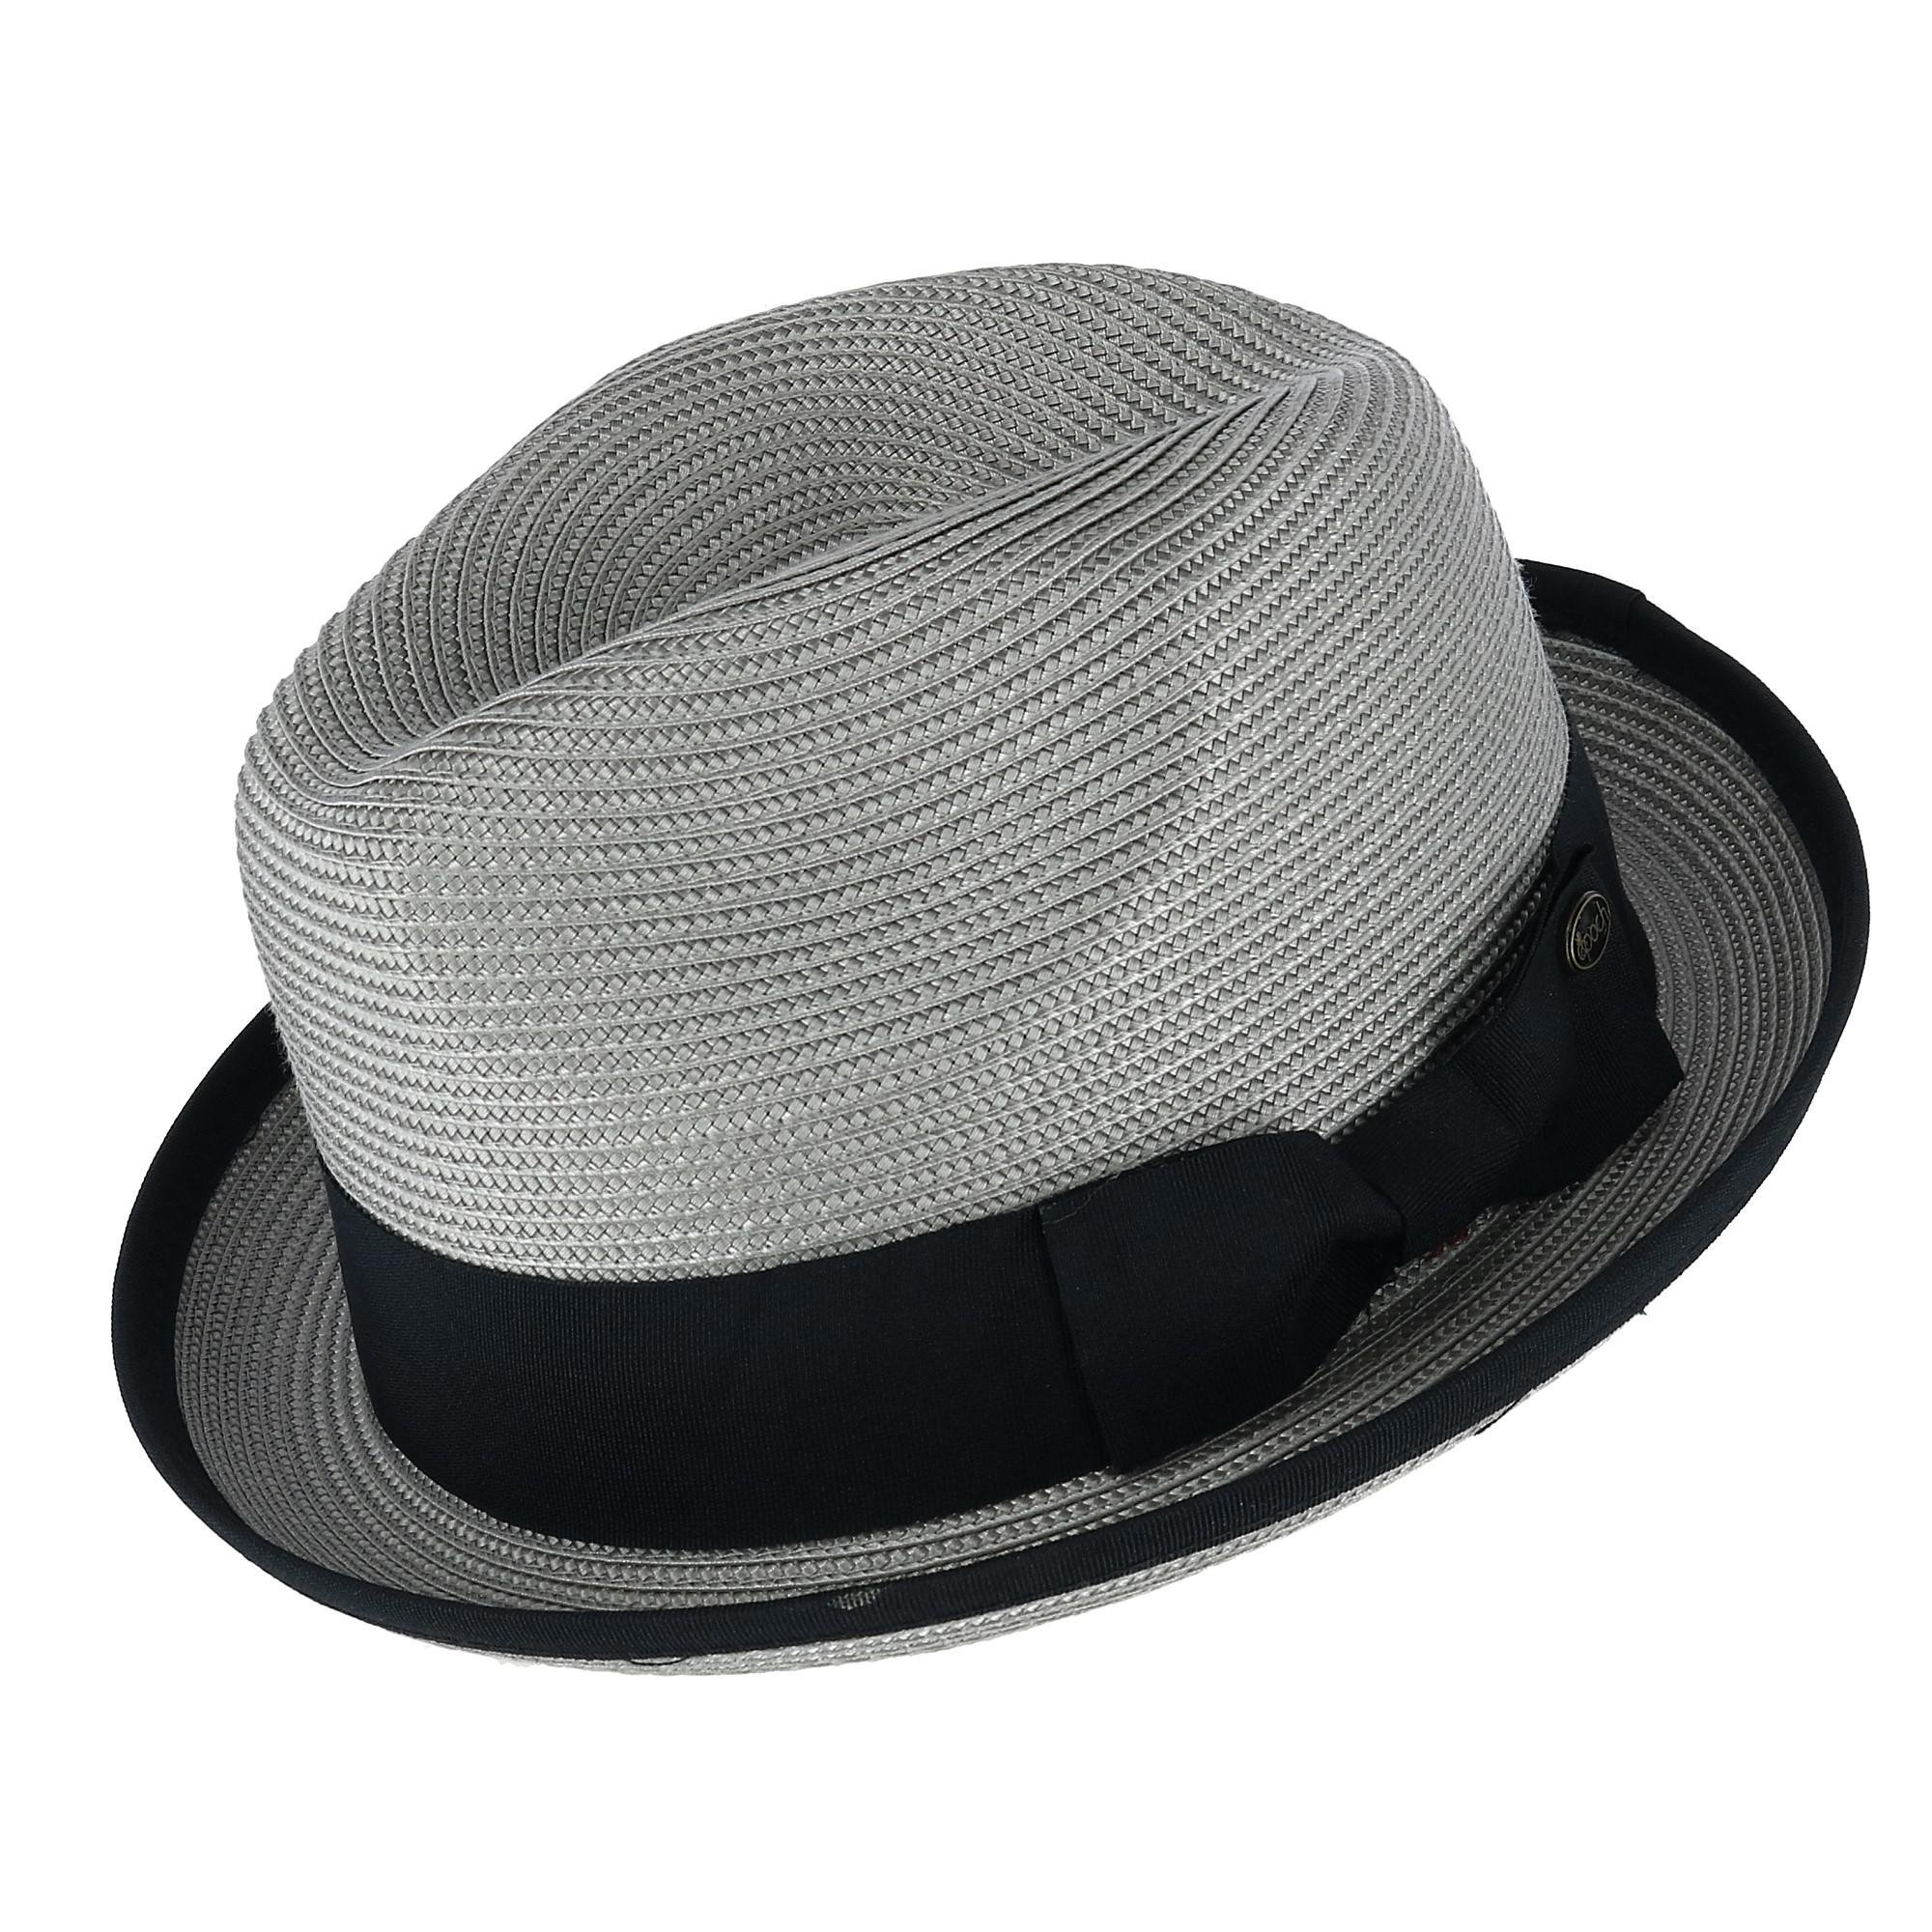 a0b835348 Epoch Hats Company Men's Fedora with Contrast Band and Trim ...